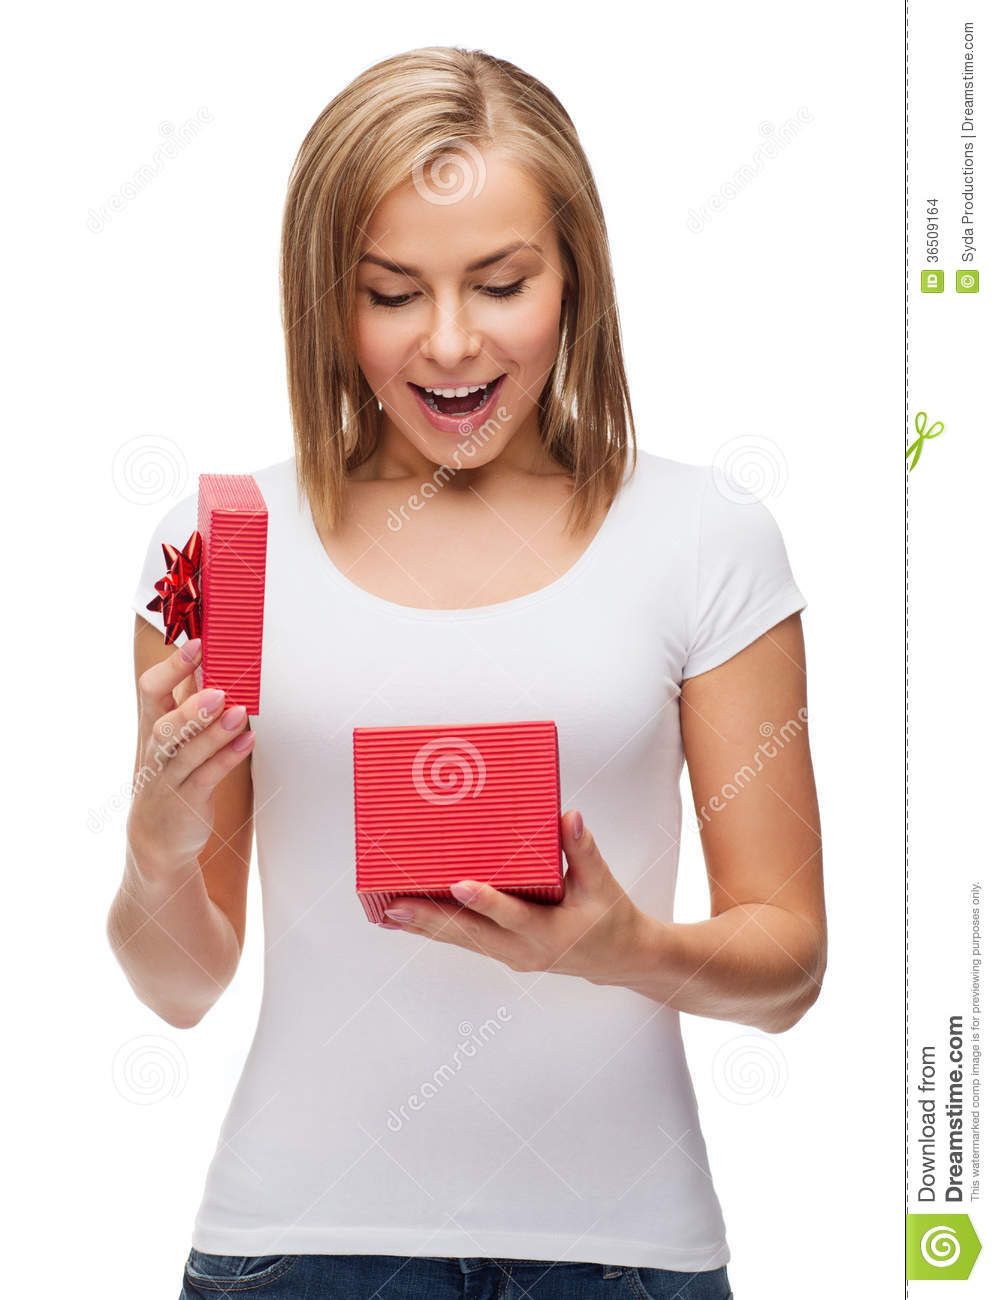 Smiling girl with gift box